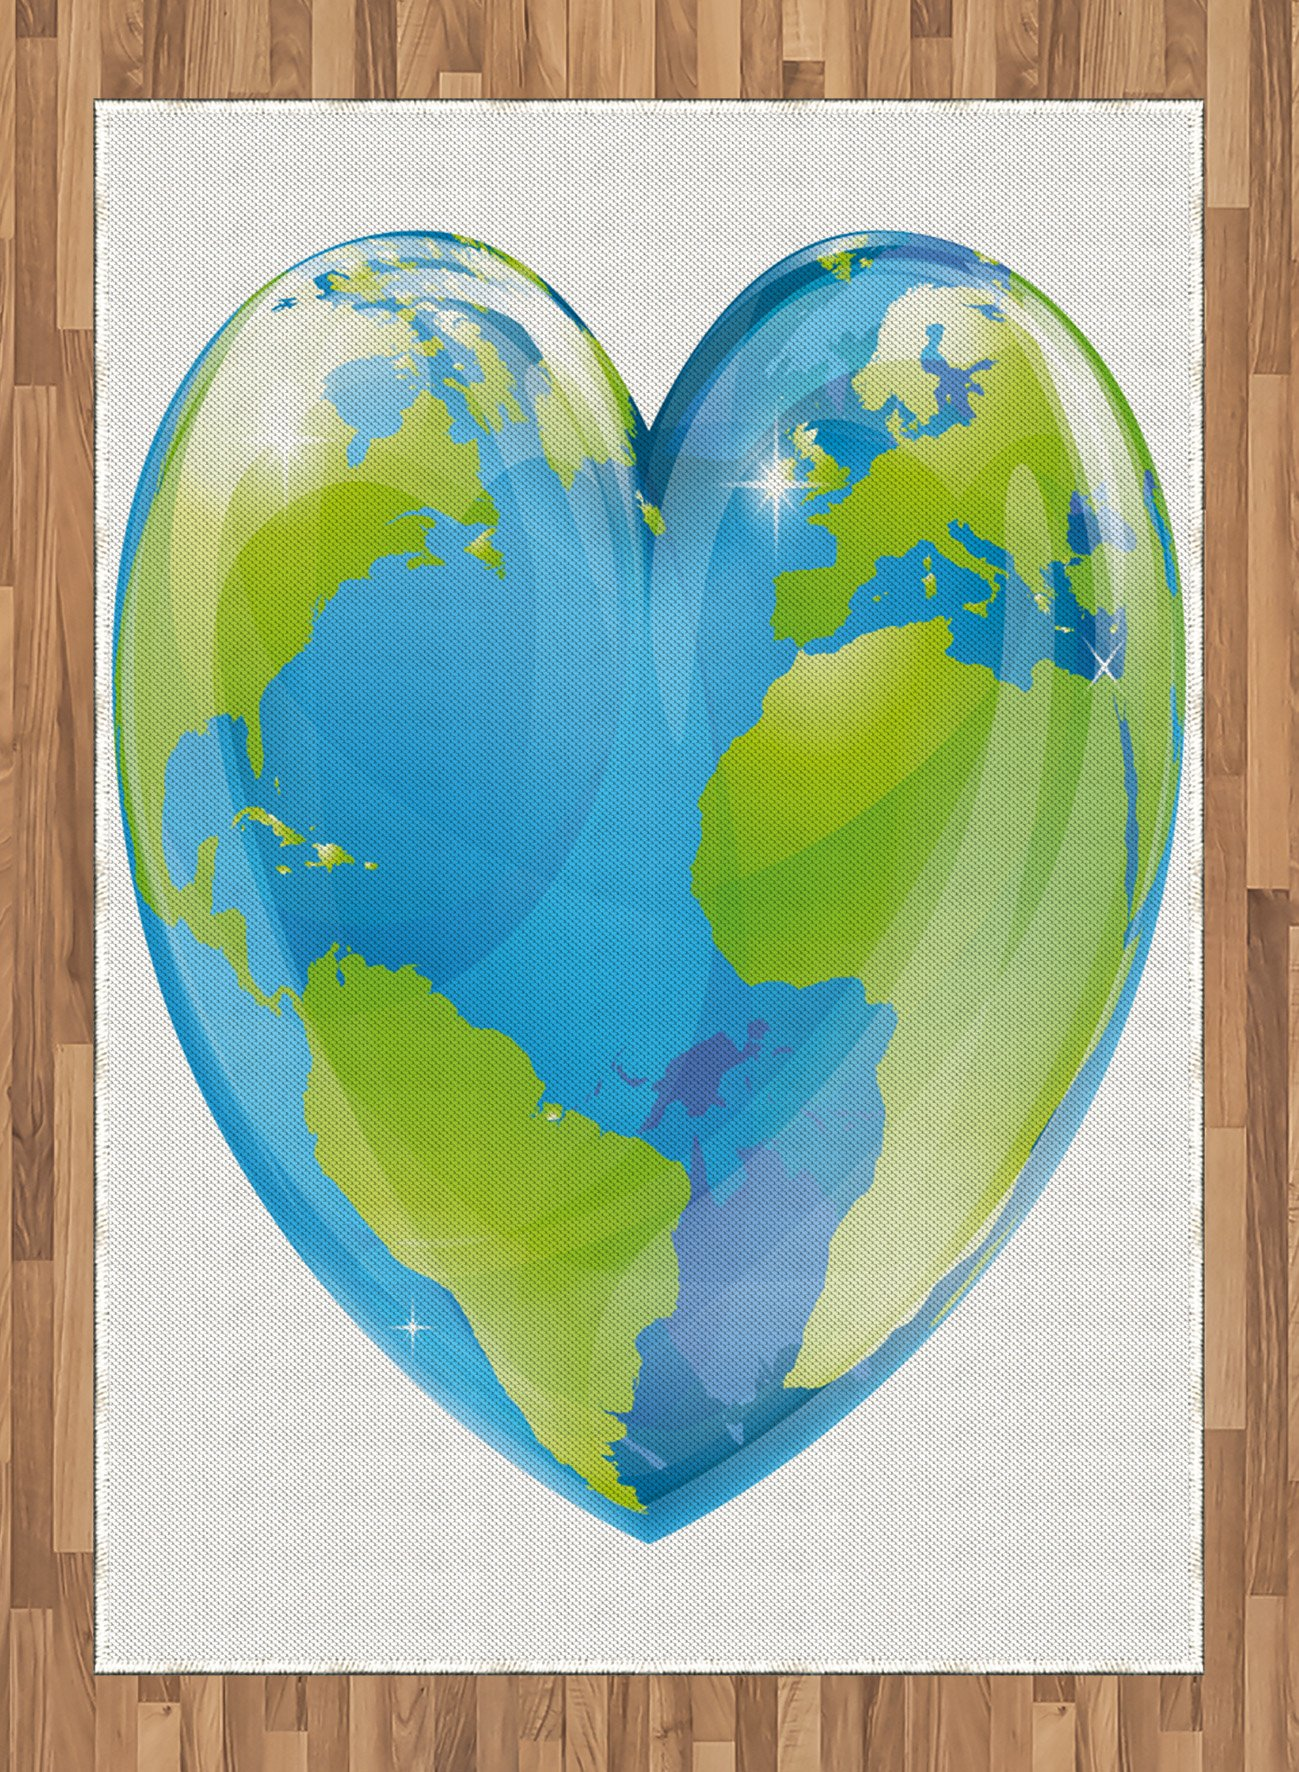 Earth Area Rug by Ambesonne, Vibrant Globe of Earth in Heart Shape Love The World Care for Environment, Flat Woven Accent Rug for Living Room Bedroom Dining Room, 5.2 x 7.5 FT, Pale Blue Lime Green